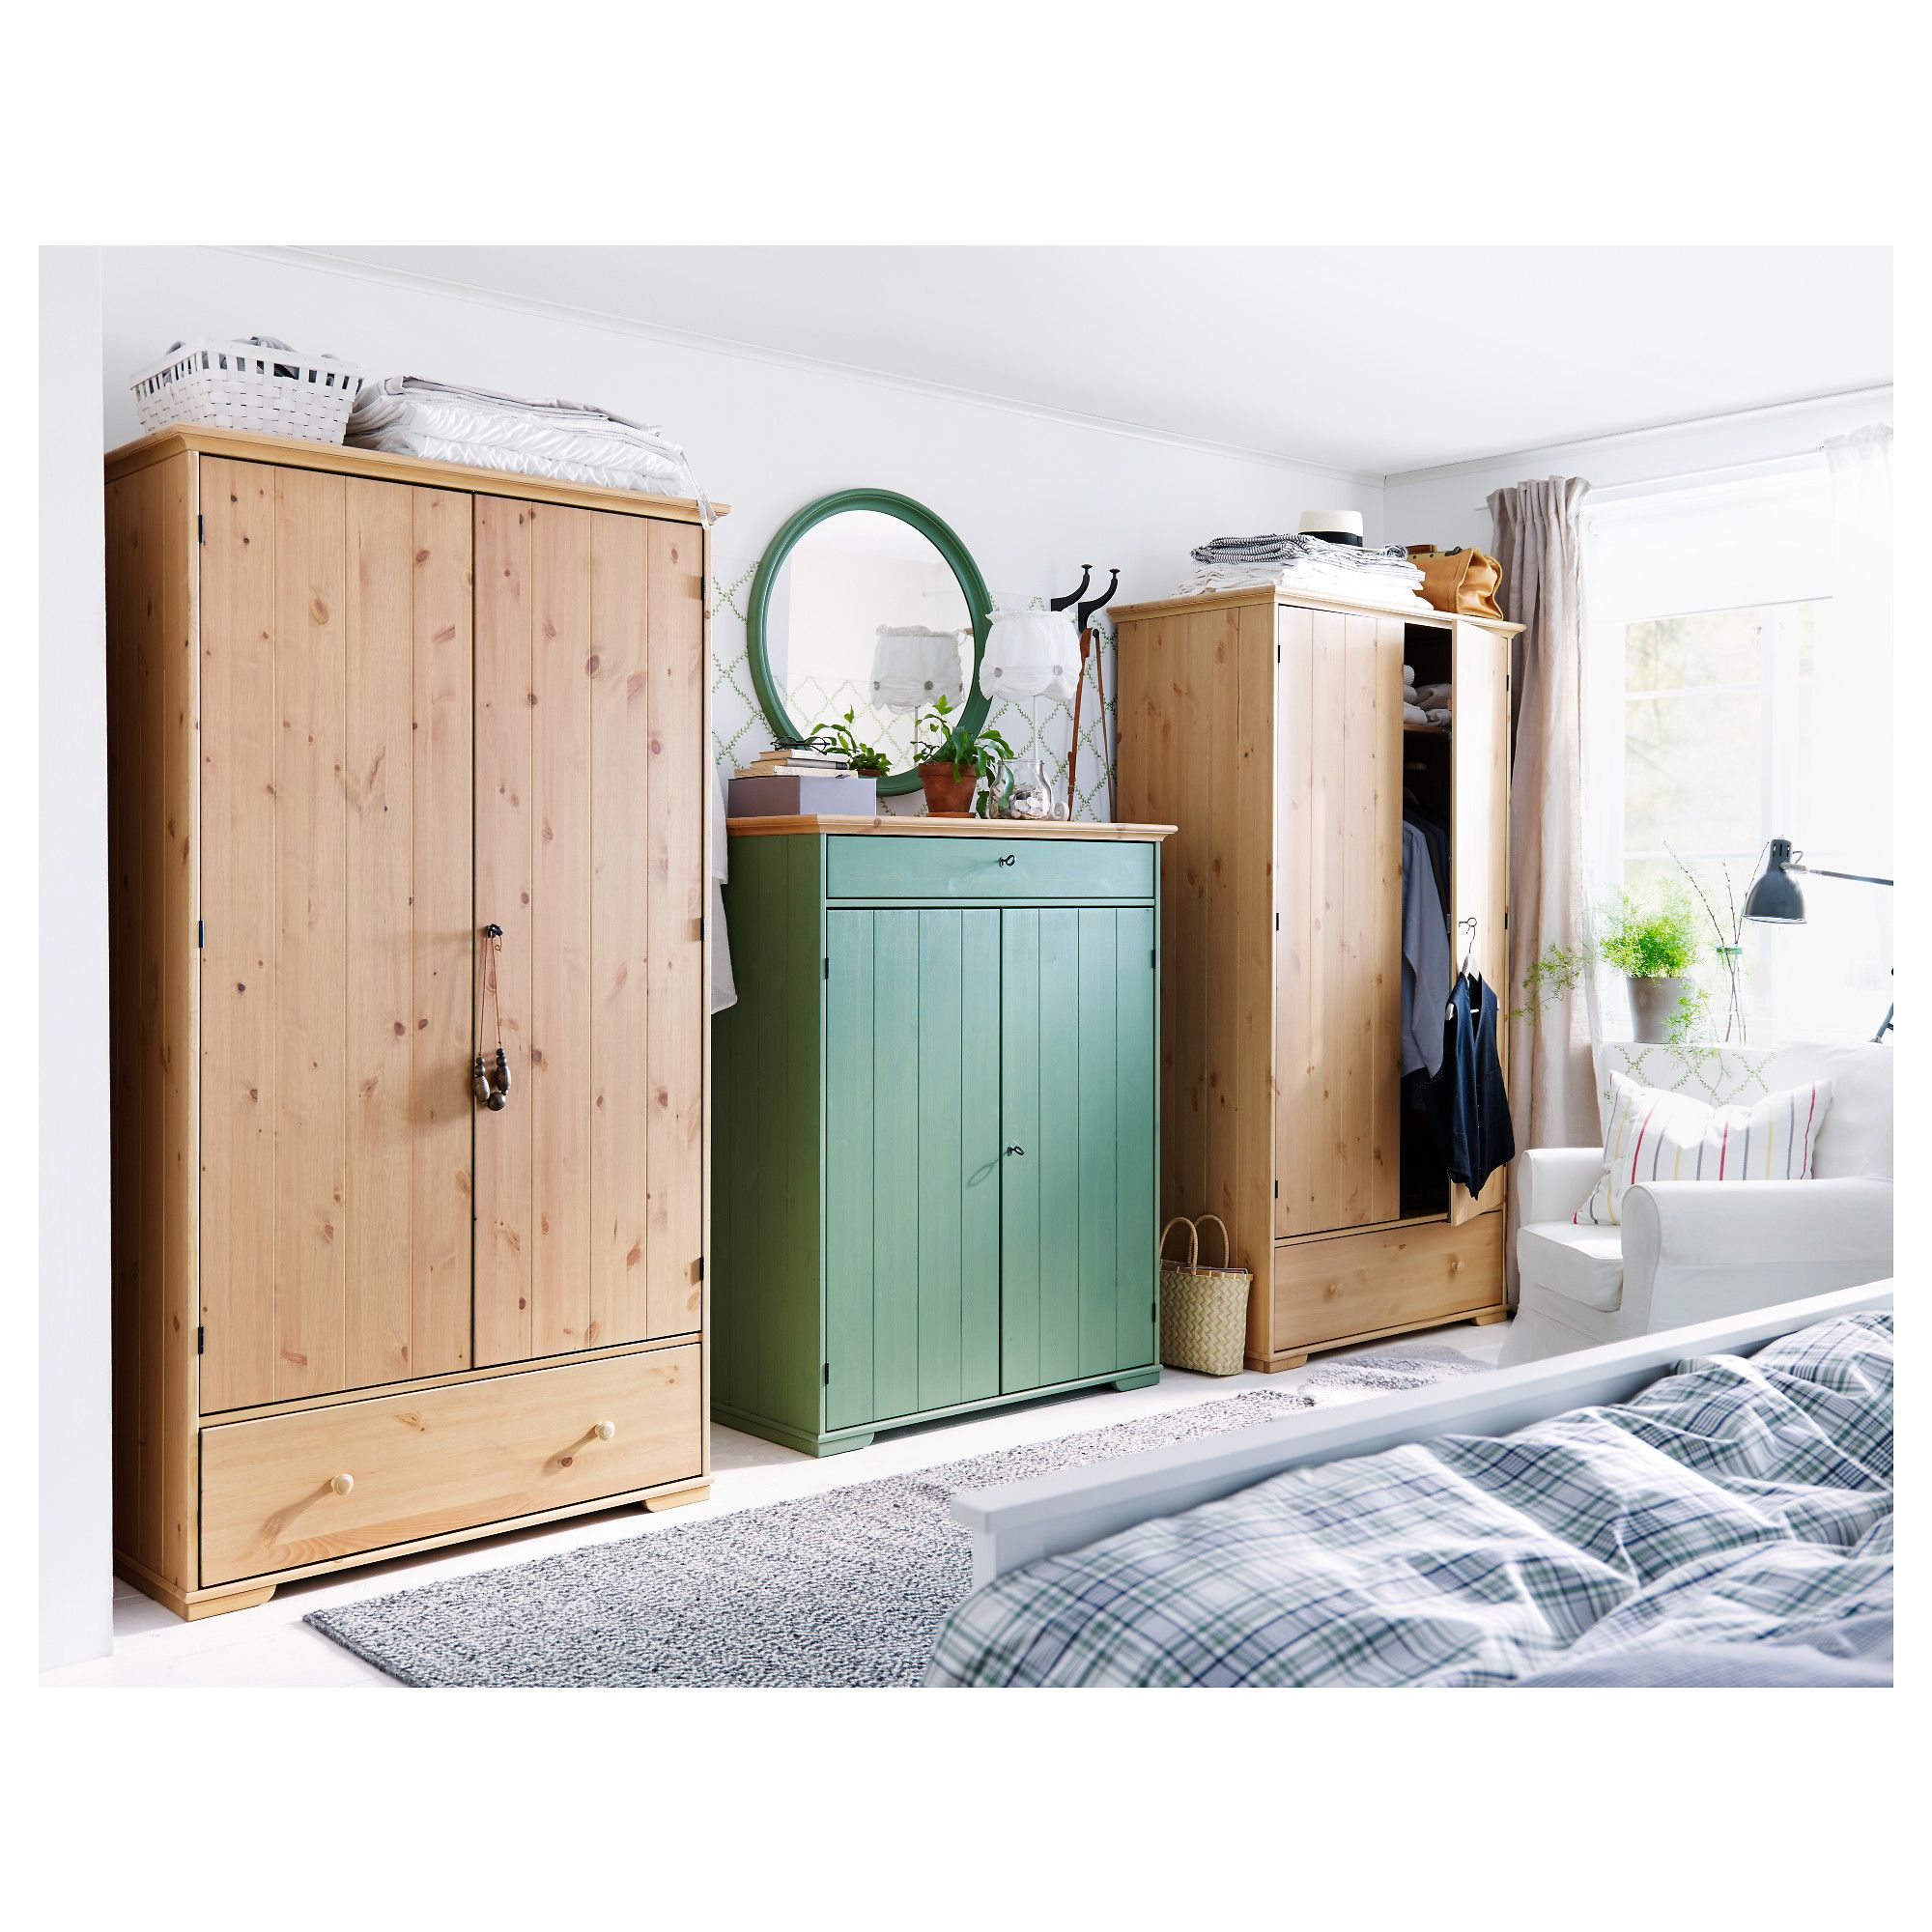 HURDAL Linen cabinet - IKEA | bedroom ideas | Pinterest | Ideen